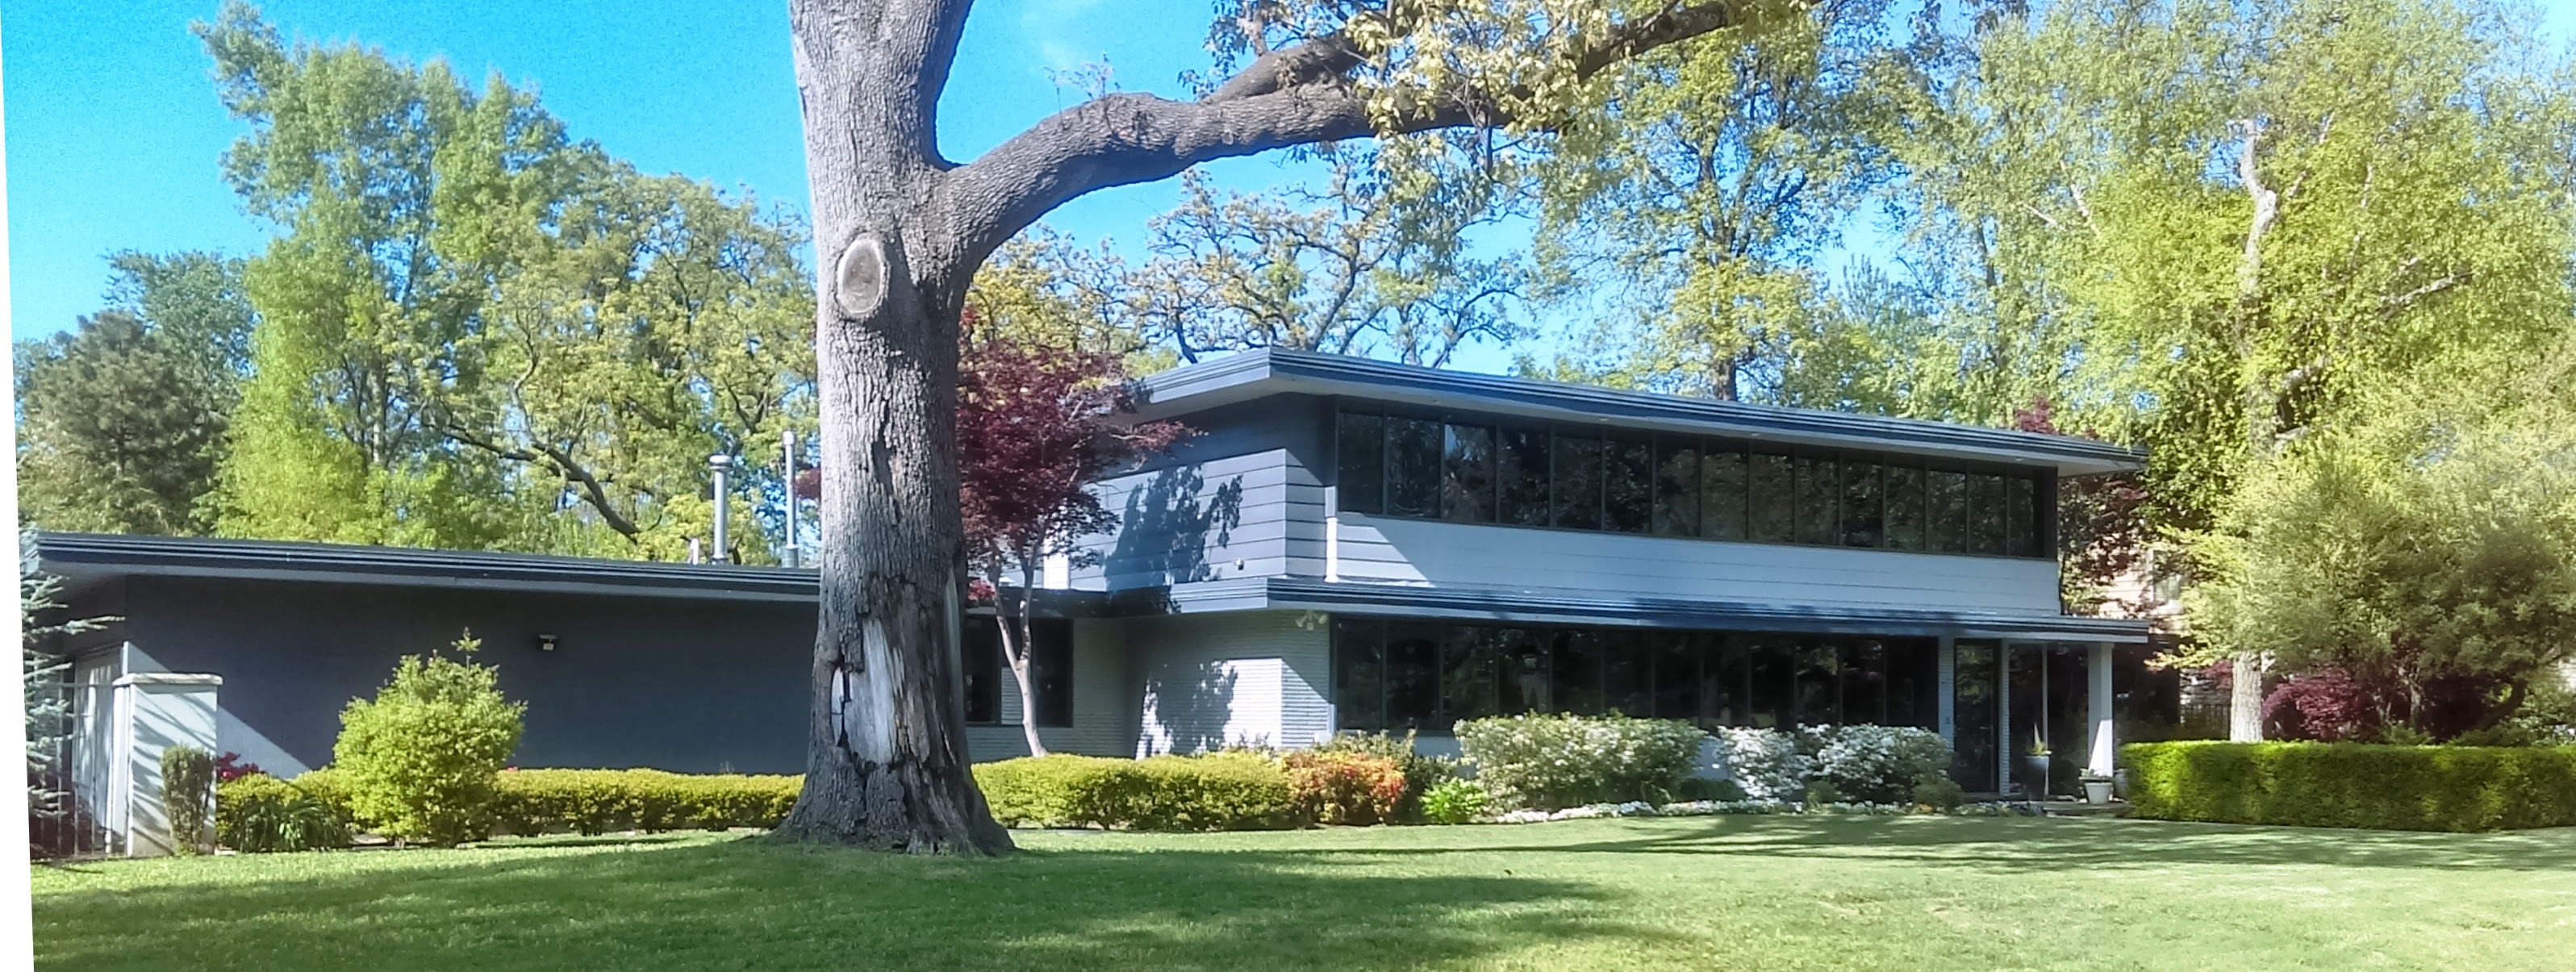 Bauhaus-Inspired Home Featured by Tulsa Foundation for Architecture